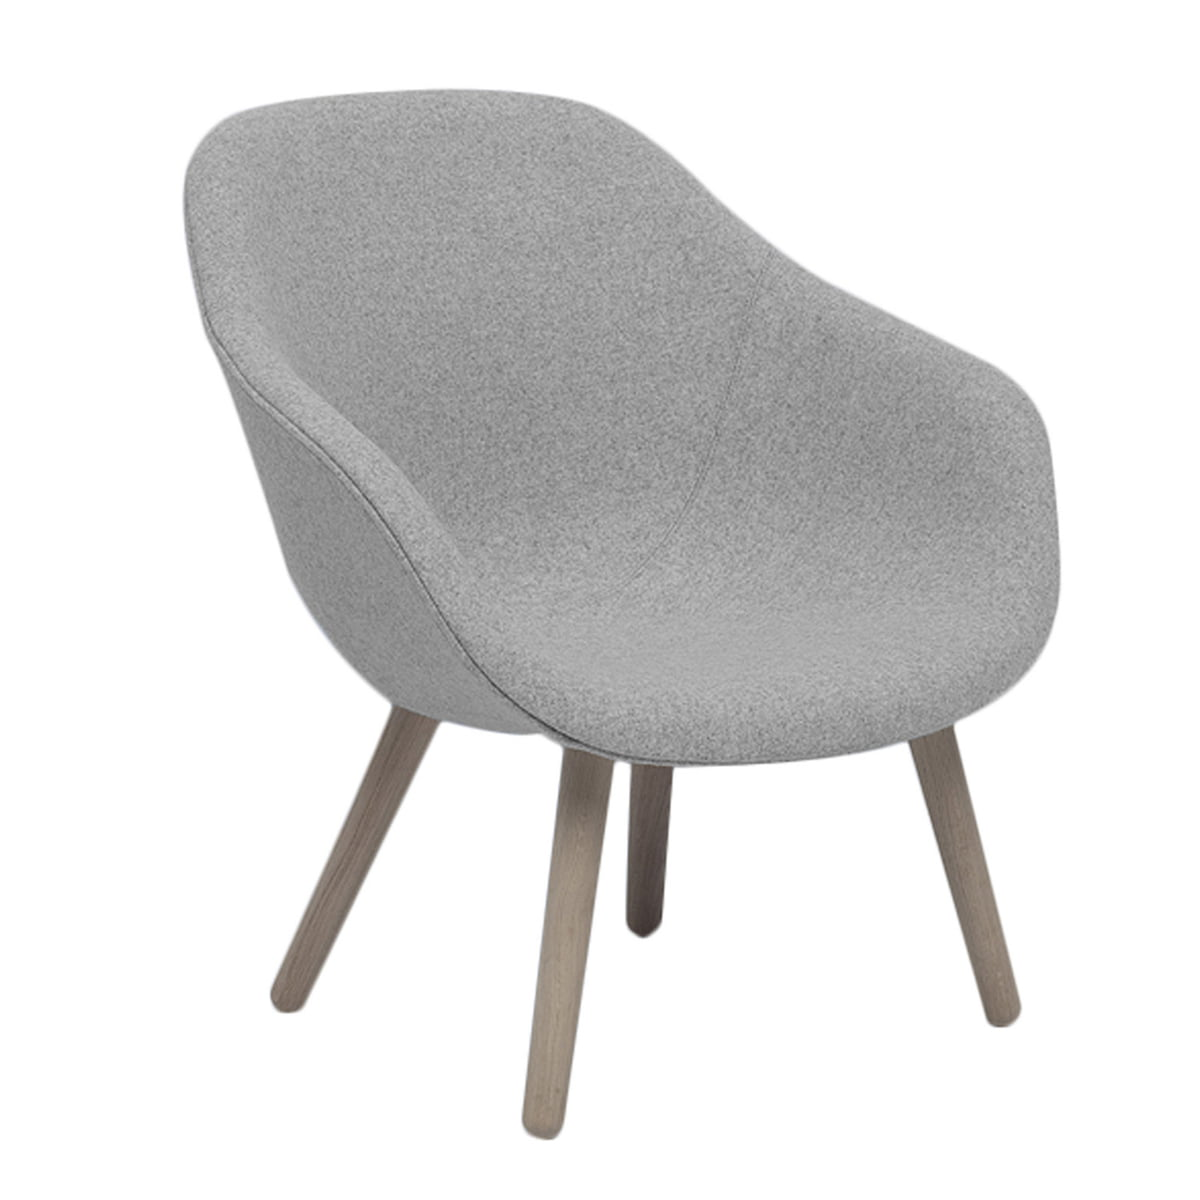 Hay - About A Lounge Chair, Low / AAL 82, Remix hellgrau (123) (EU) | Wohnzimmer > Sessel > Loungesessel | Hellgrau | Hay